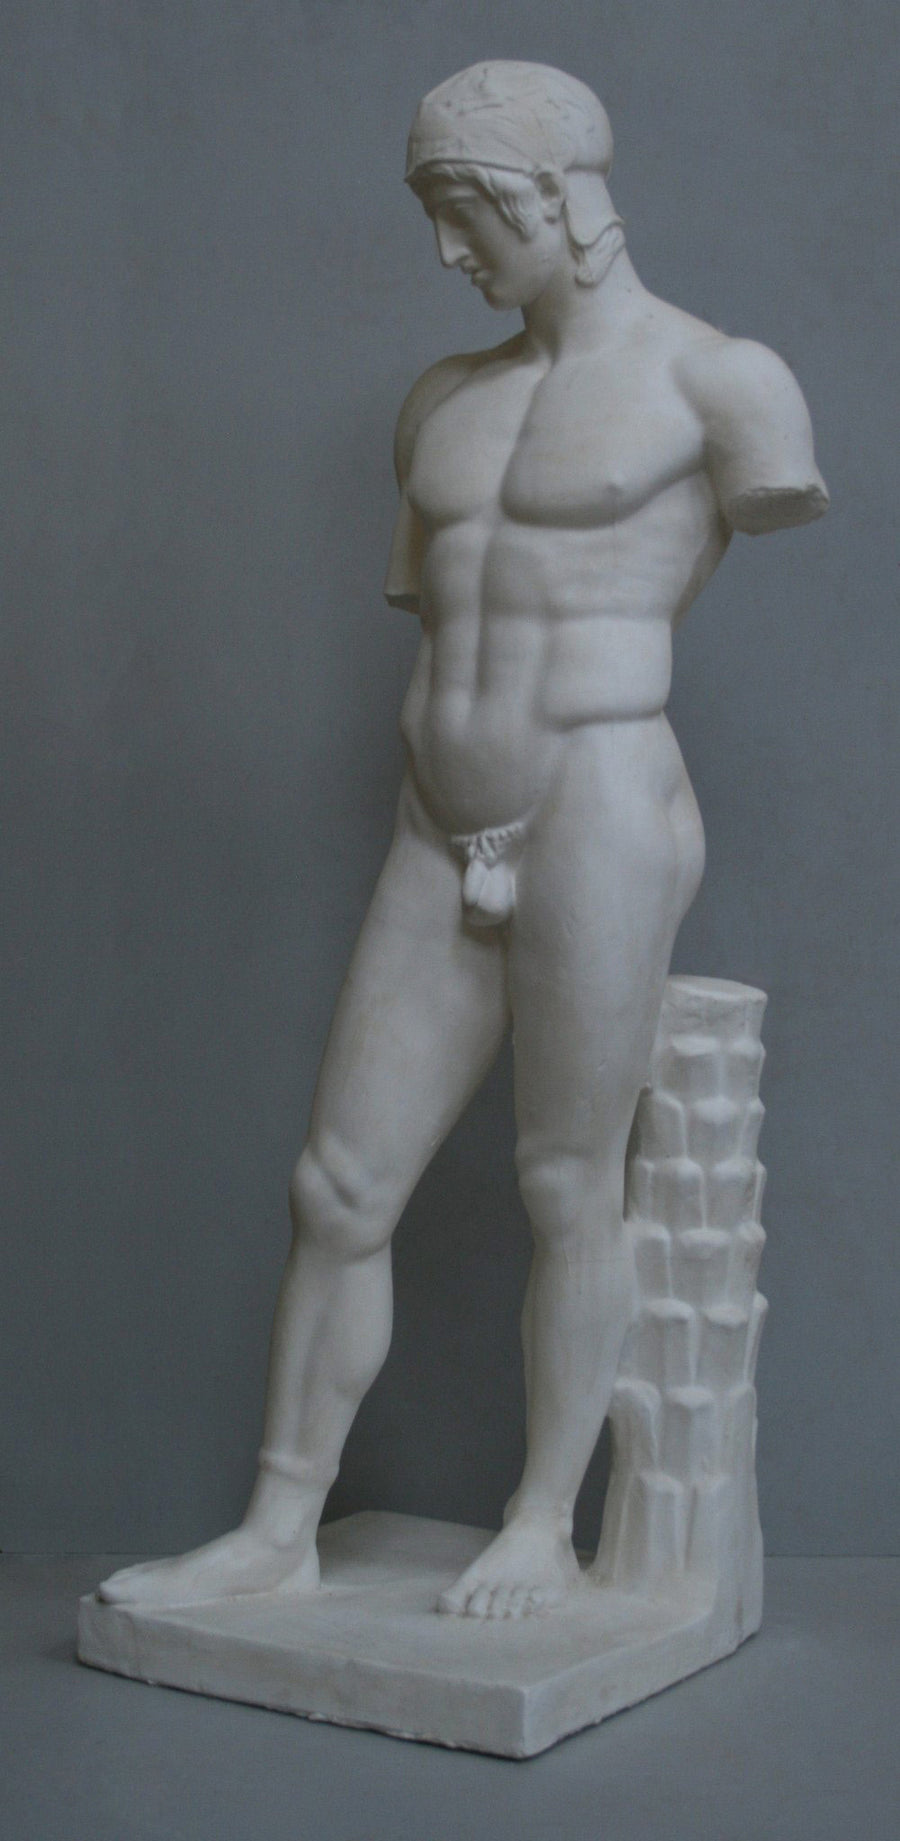 photo of plaster cast of sculpture of nude male, namely the god Ares, without arms and wearing a helmet with a supporting tree trunk, on a gray background